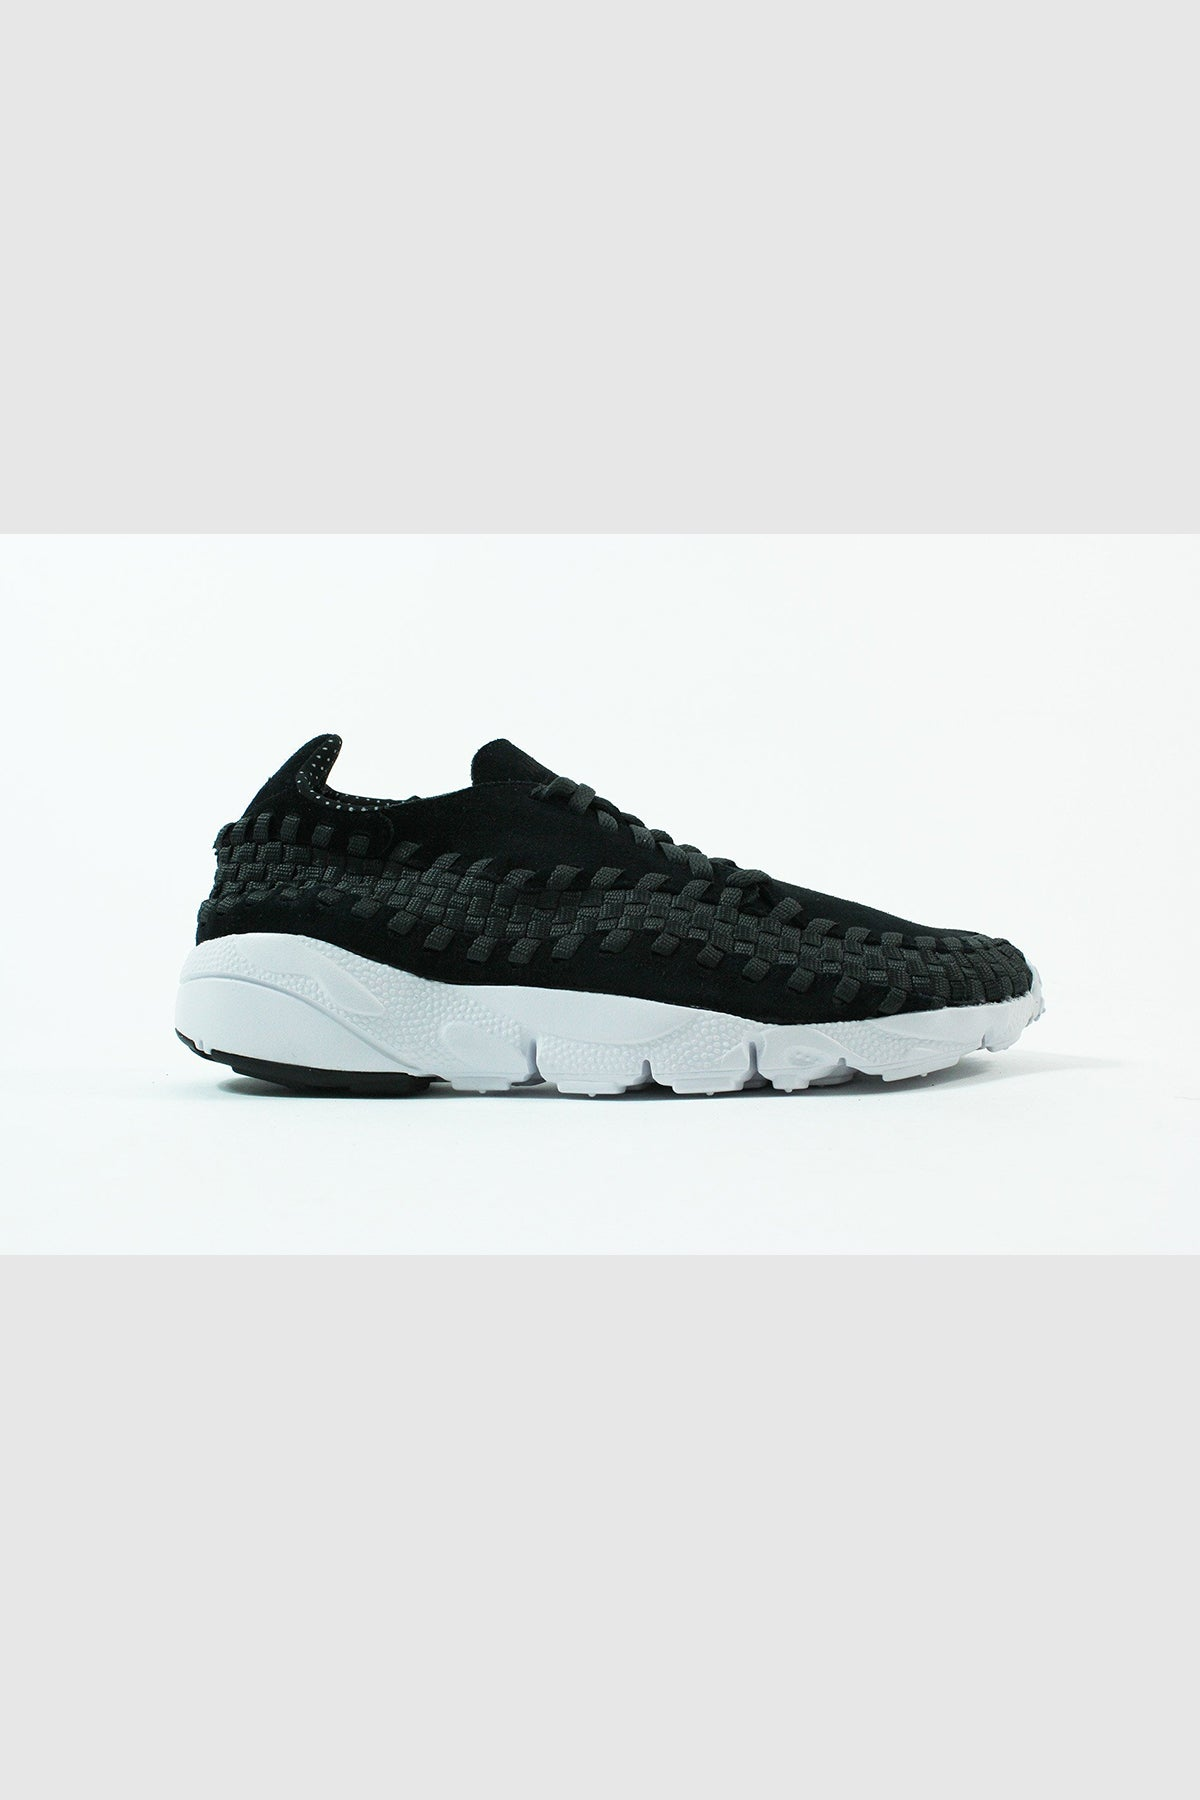 Nike - Air Footscape Woven NM (Black / Black - Anthracite White)